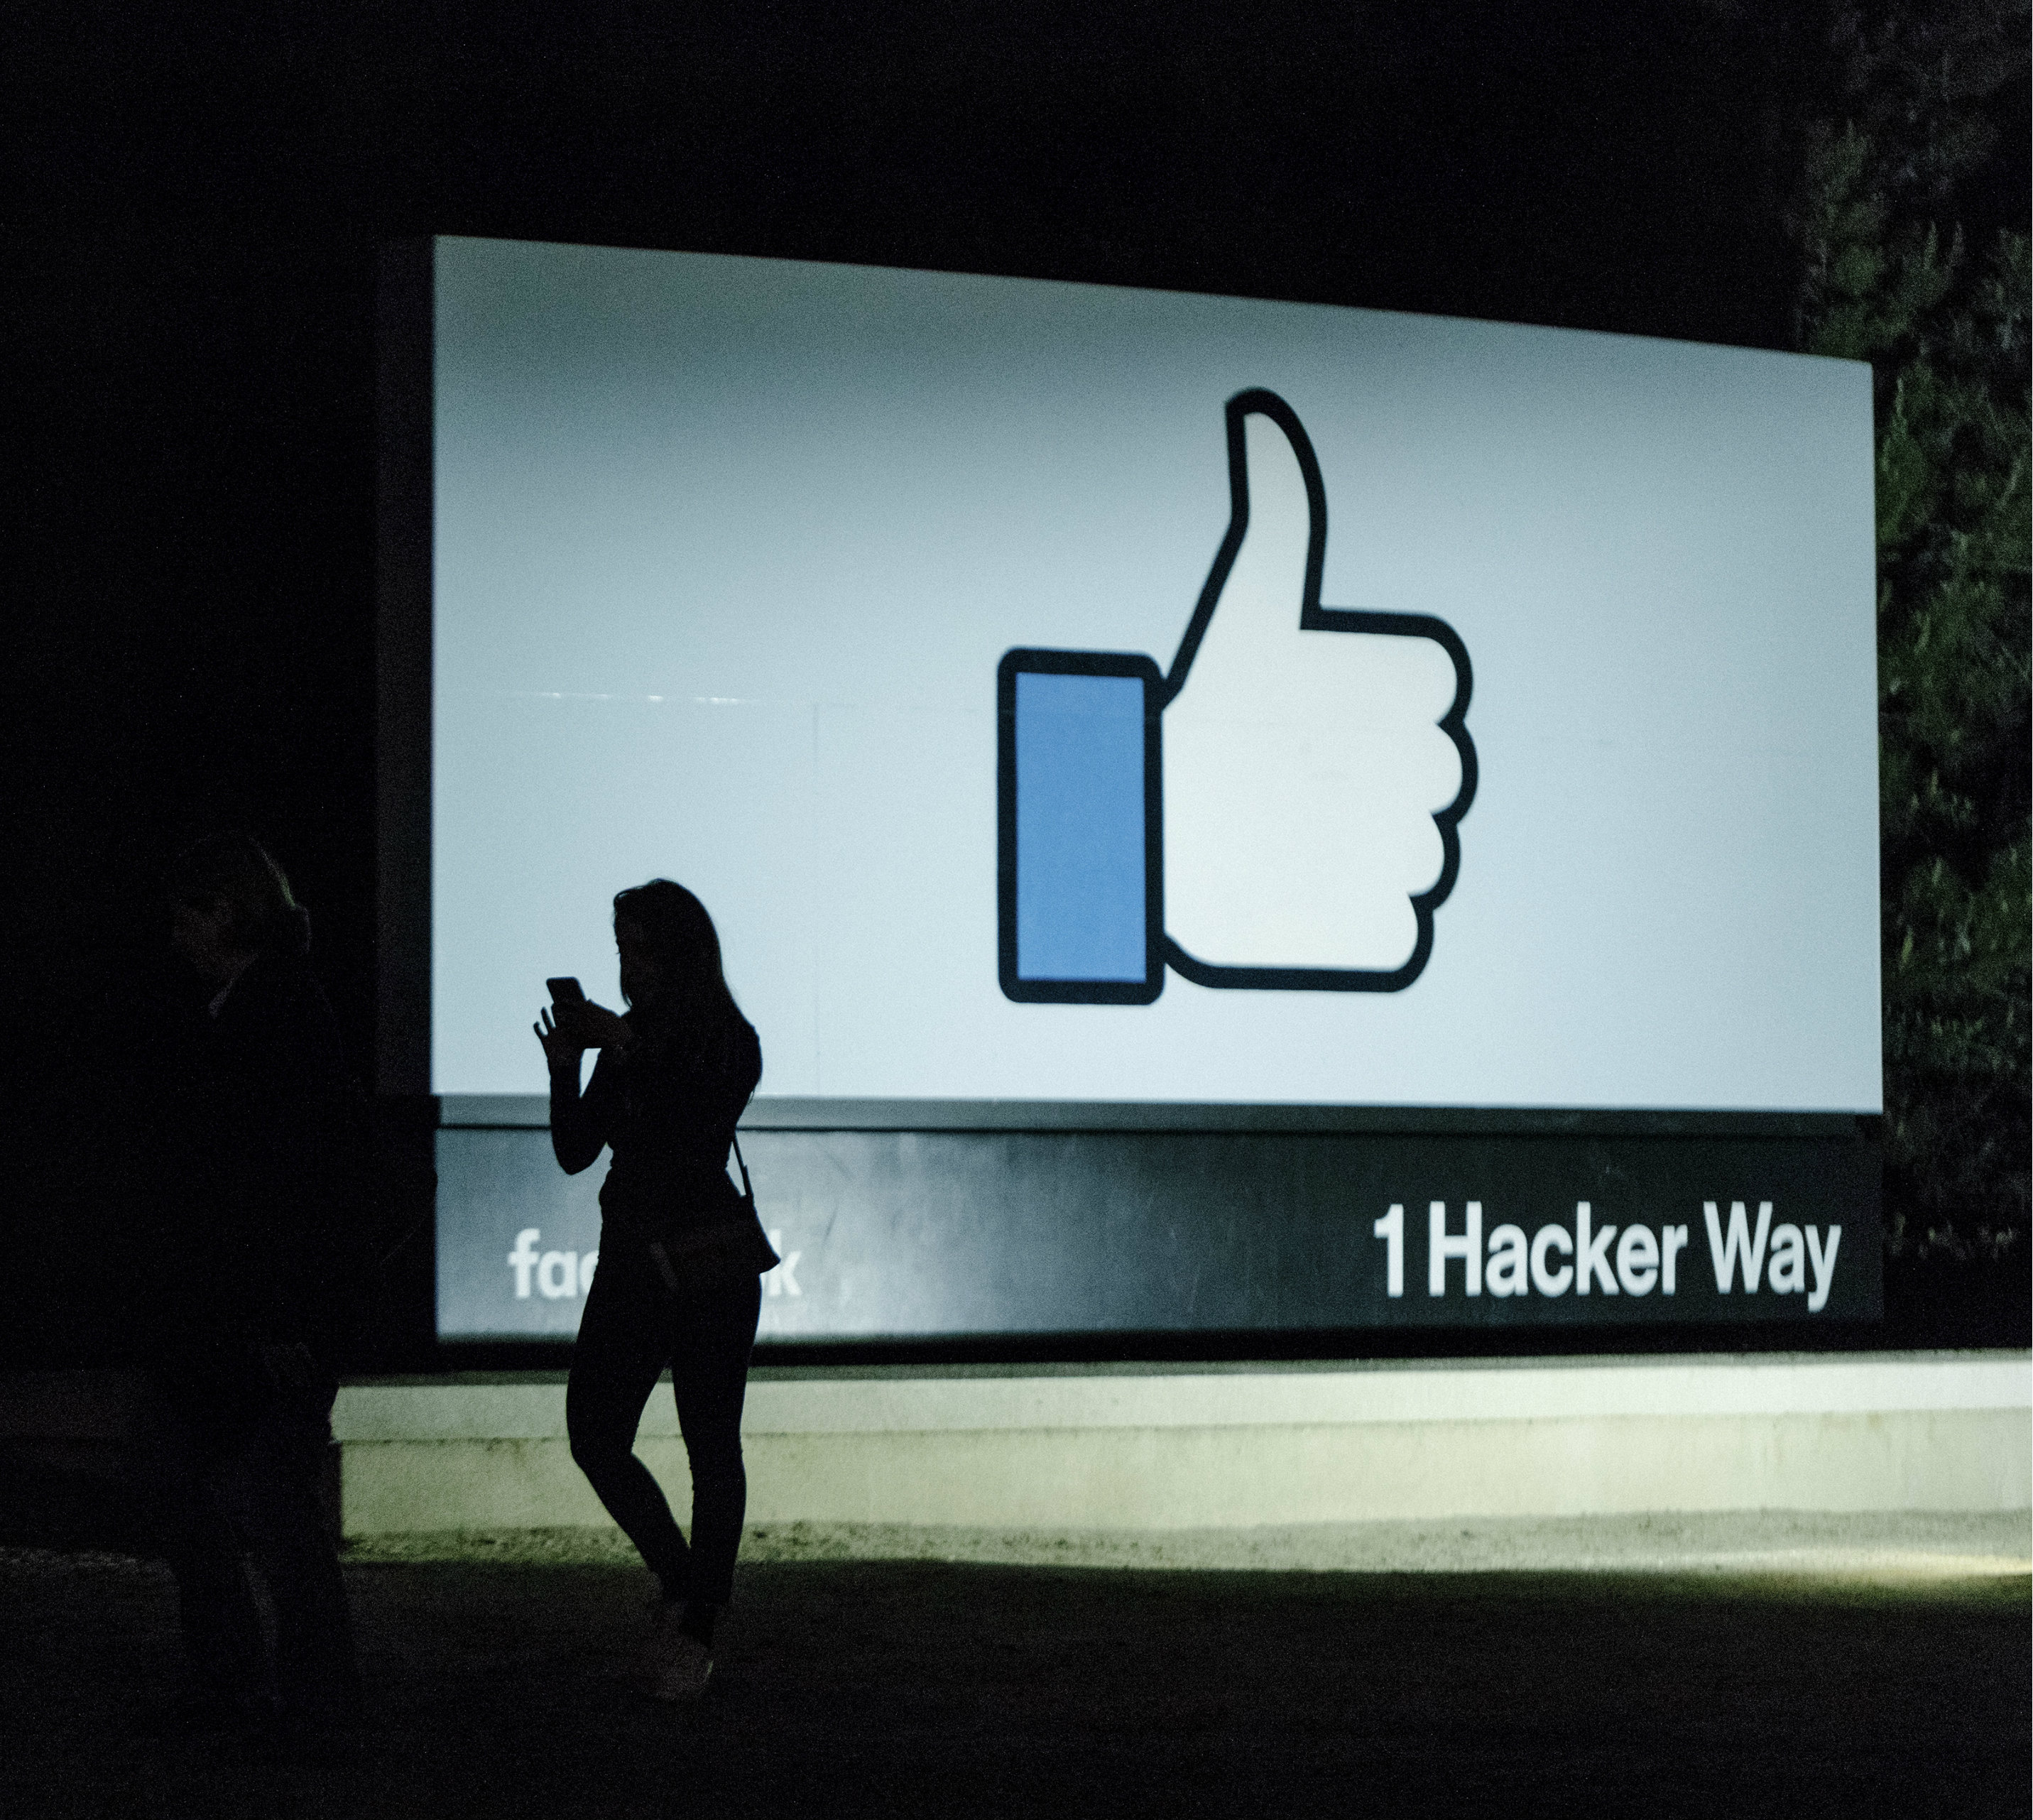 The Facebook headquarters in Menlo Park, California. Facebook's decision to ban white nationalist content from its platforms is a significant policy change that bows to longstanding demands from civil rights groups.